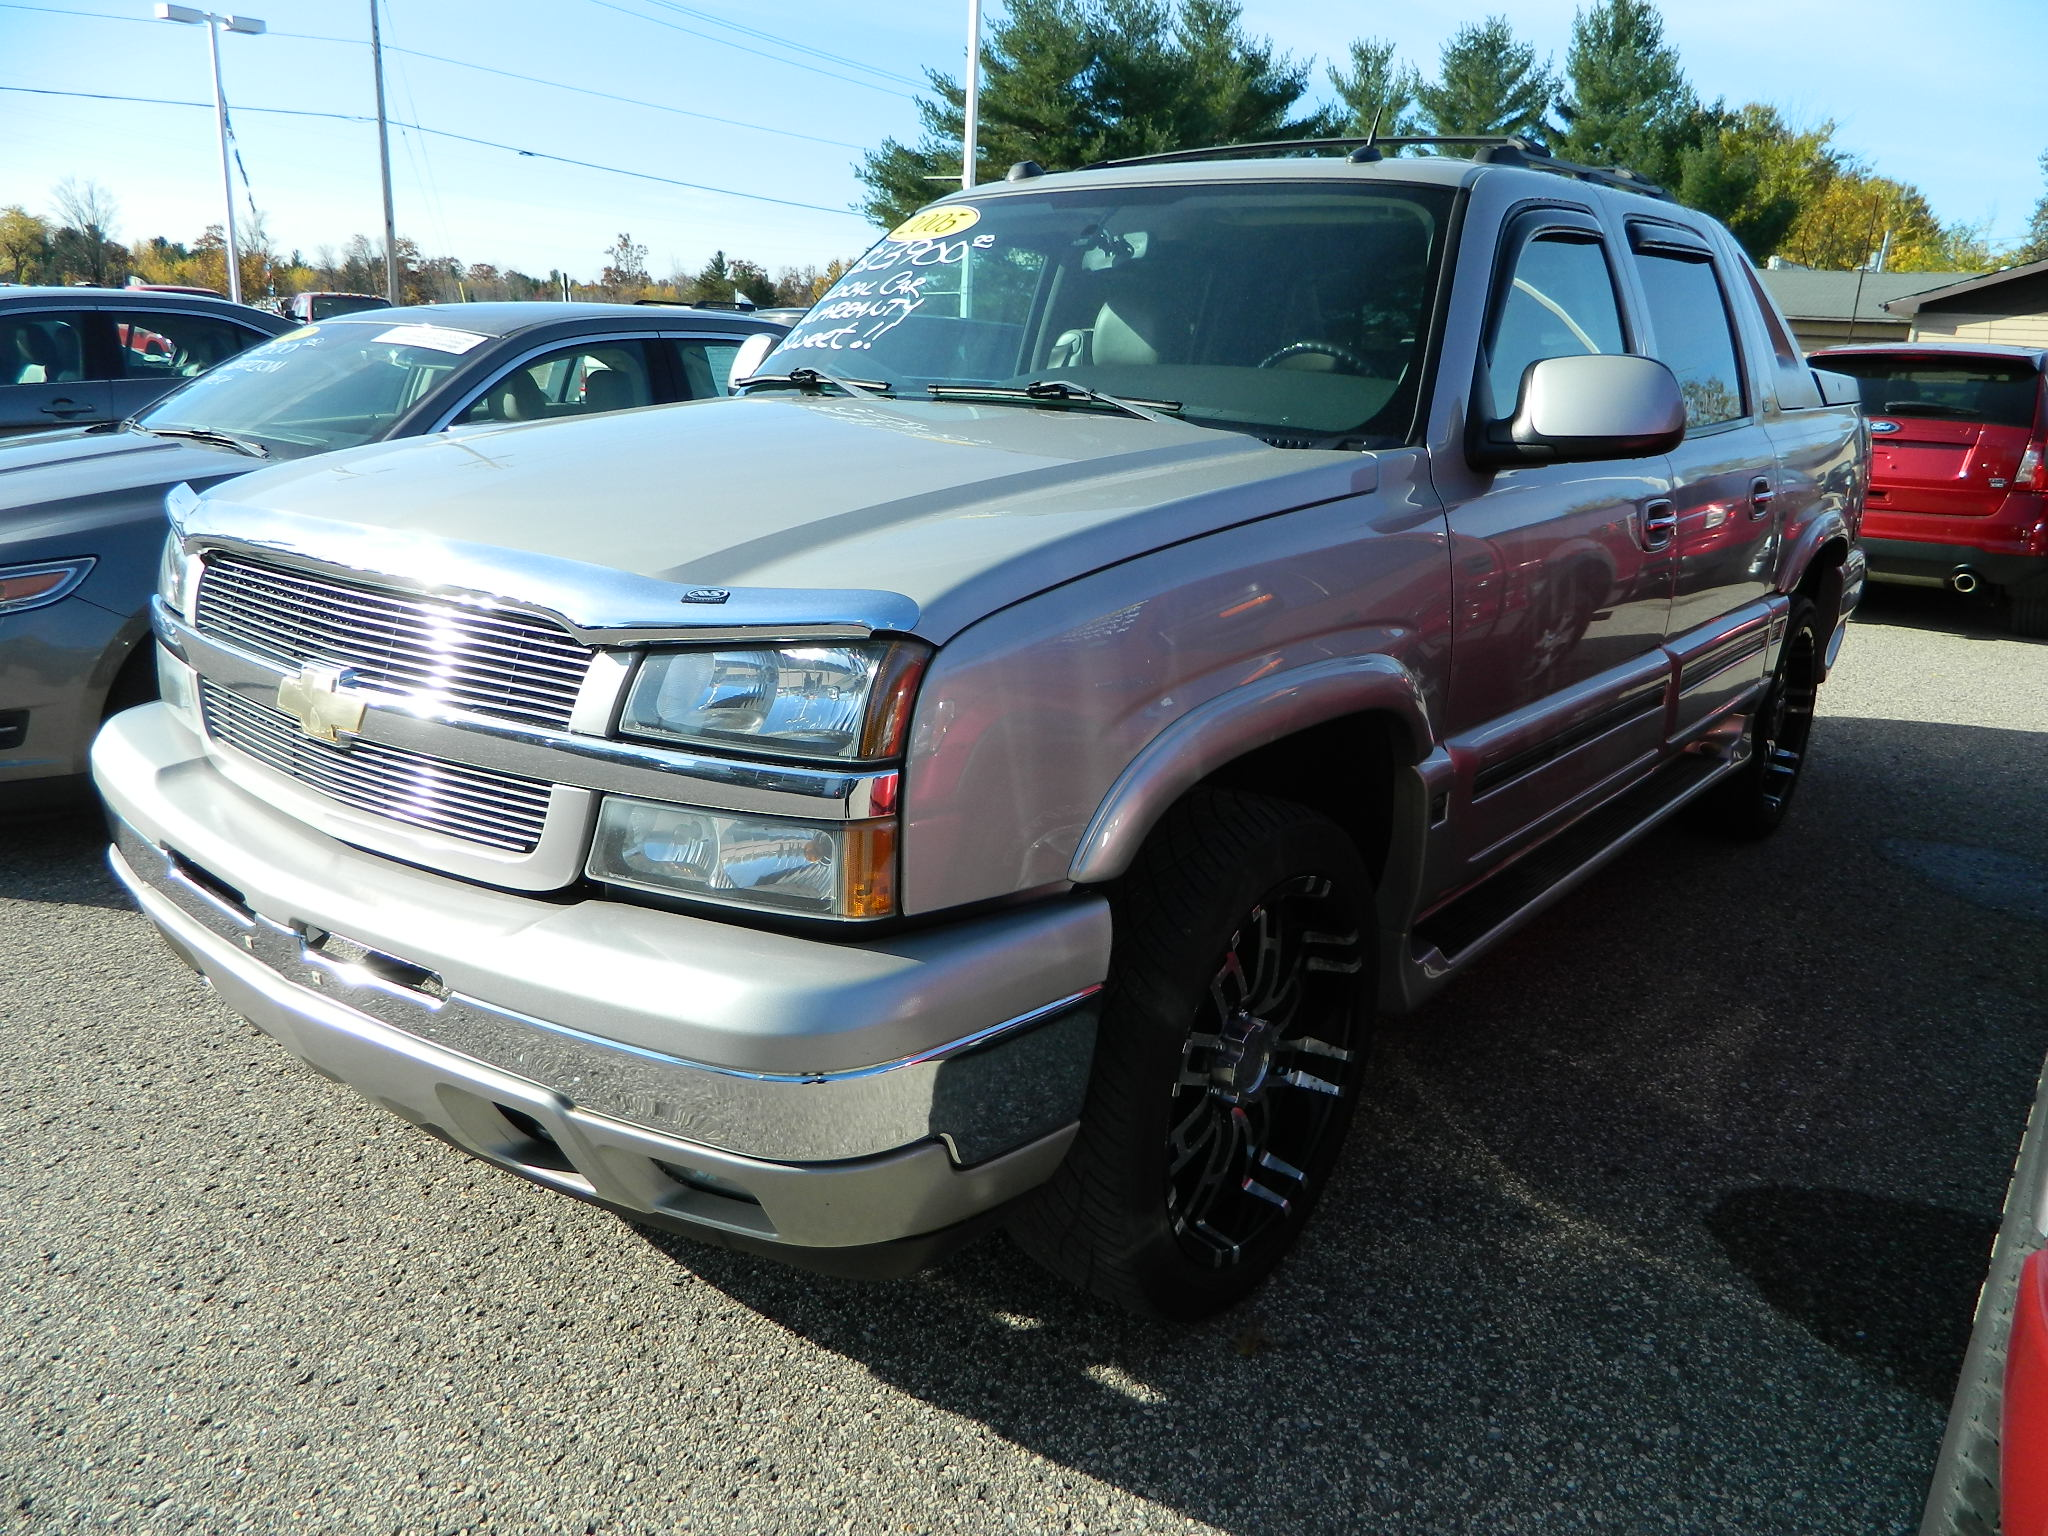 2005 Chevrolet Avalanche 1500 Z71 Truck Crew Cab